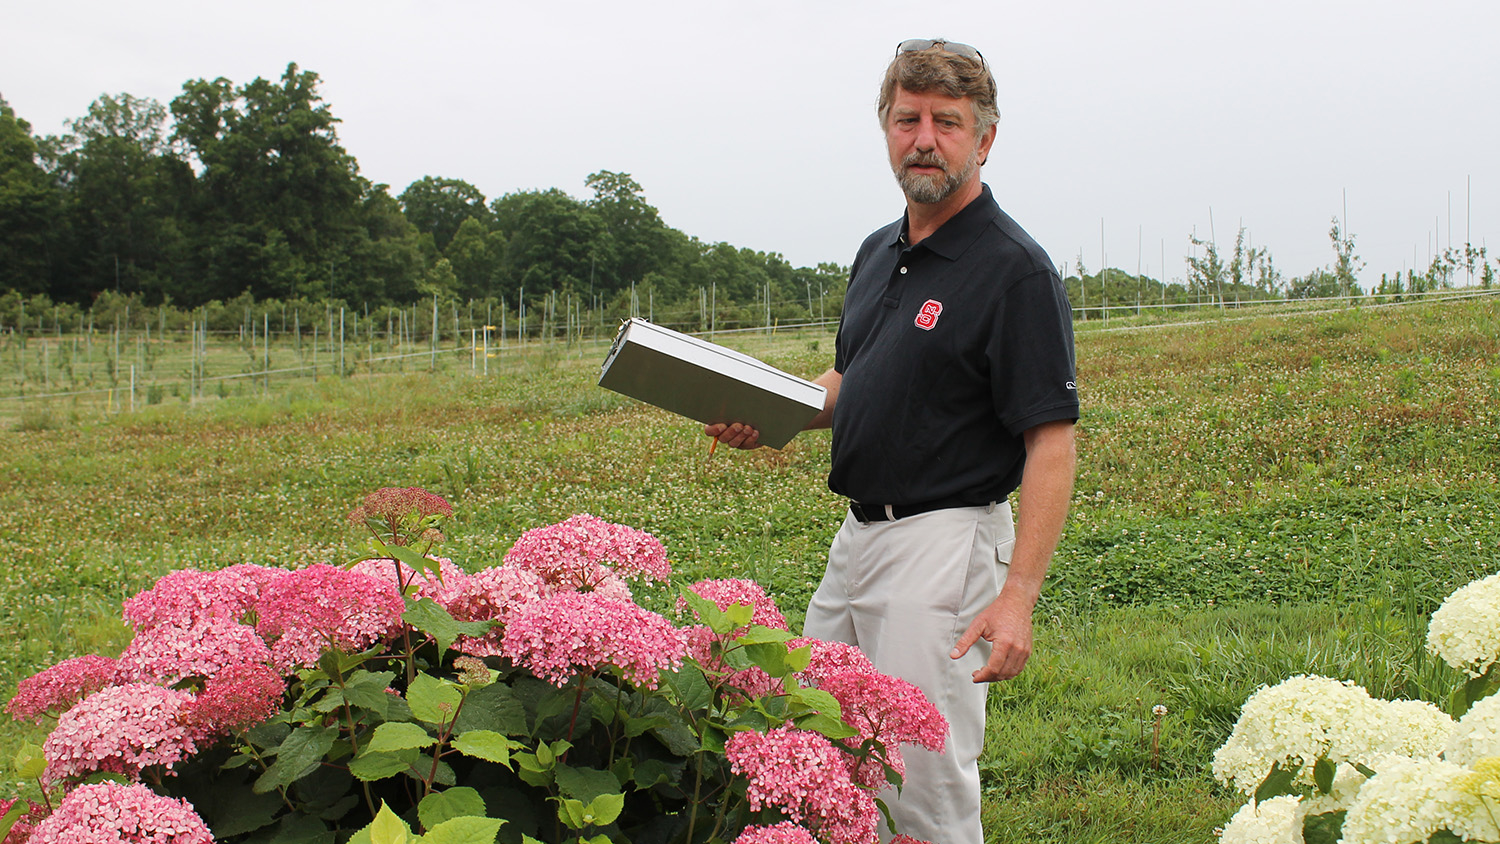 Tom Ranney outside with pink and white hydrangeas.